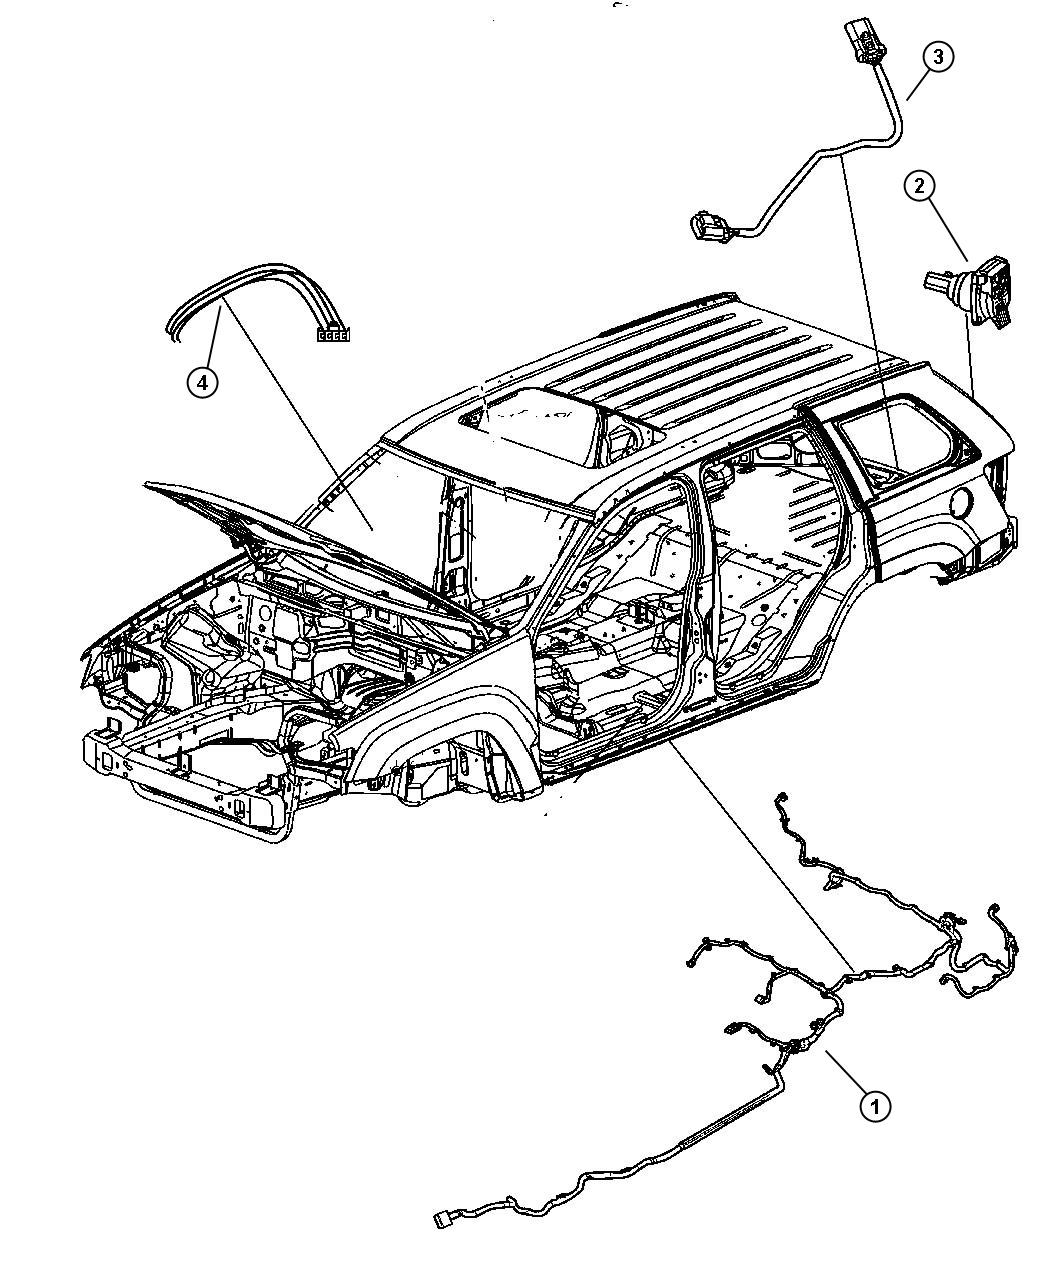 68040533AB  Jeep    Wiring    Underbody Ahx     aht     after   Jeep Parts Overstock  Atlanta GA